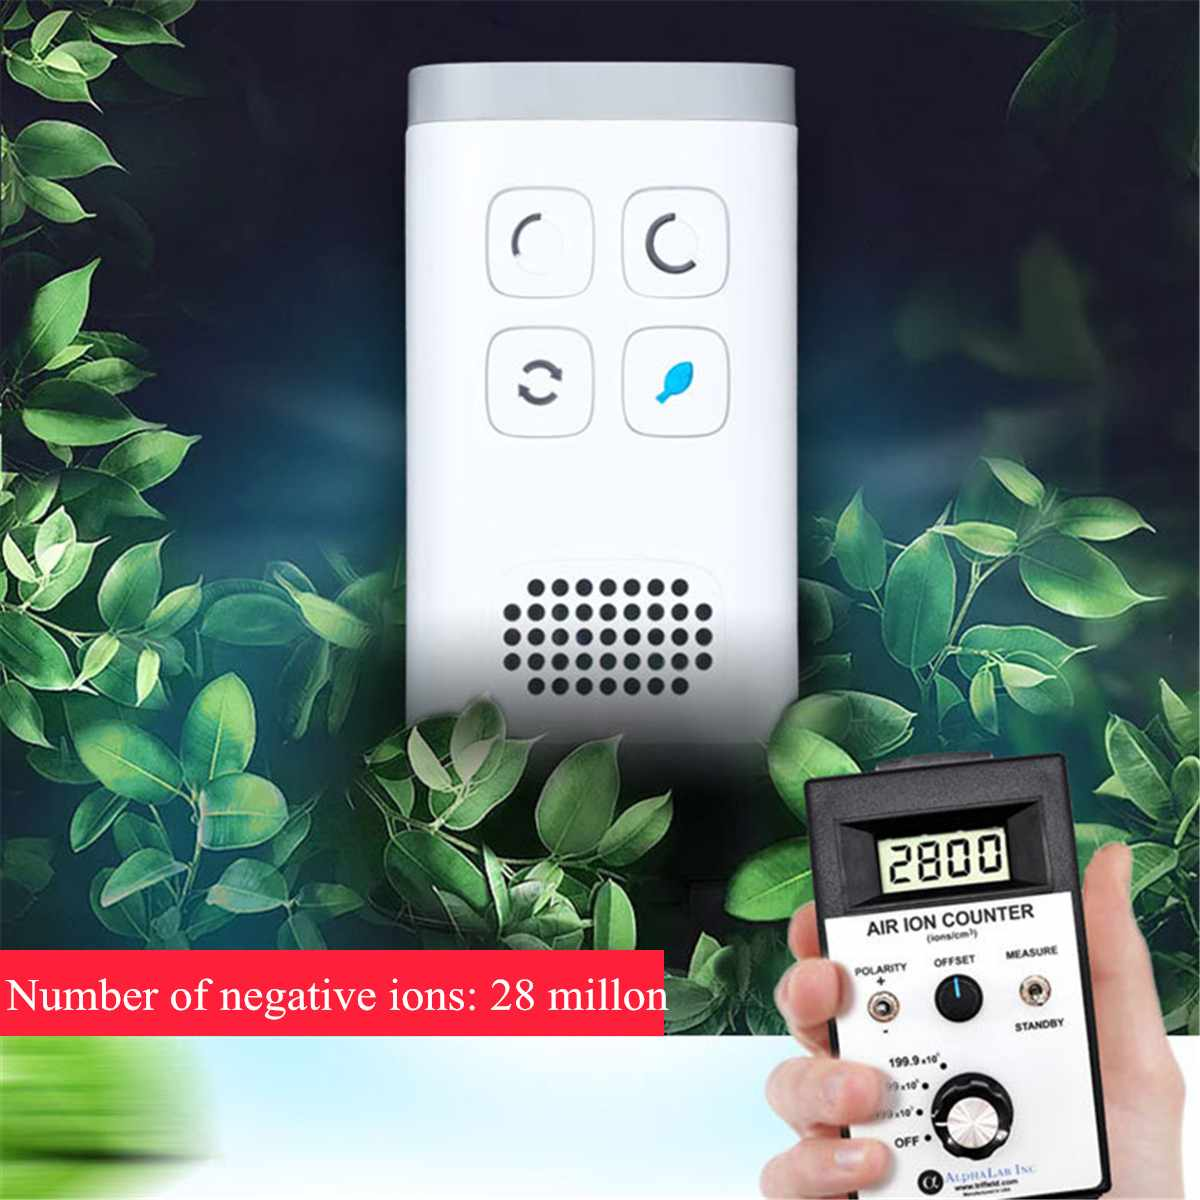 Air Purifier and Ozone Generator with 28 Million Negative Ions for Deodorizing Home and Bathroom 8